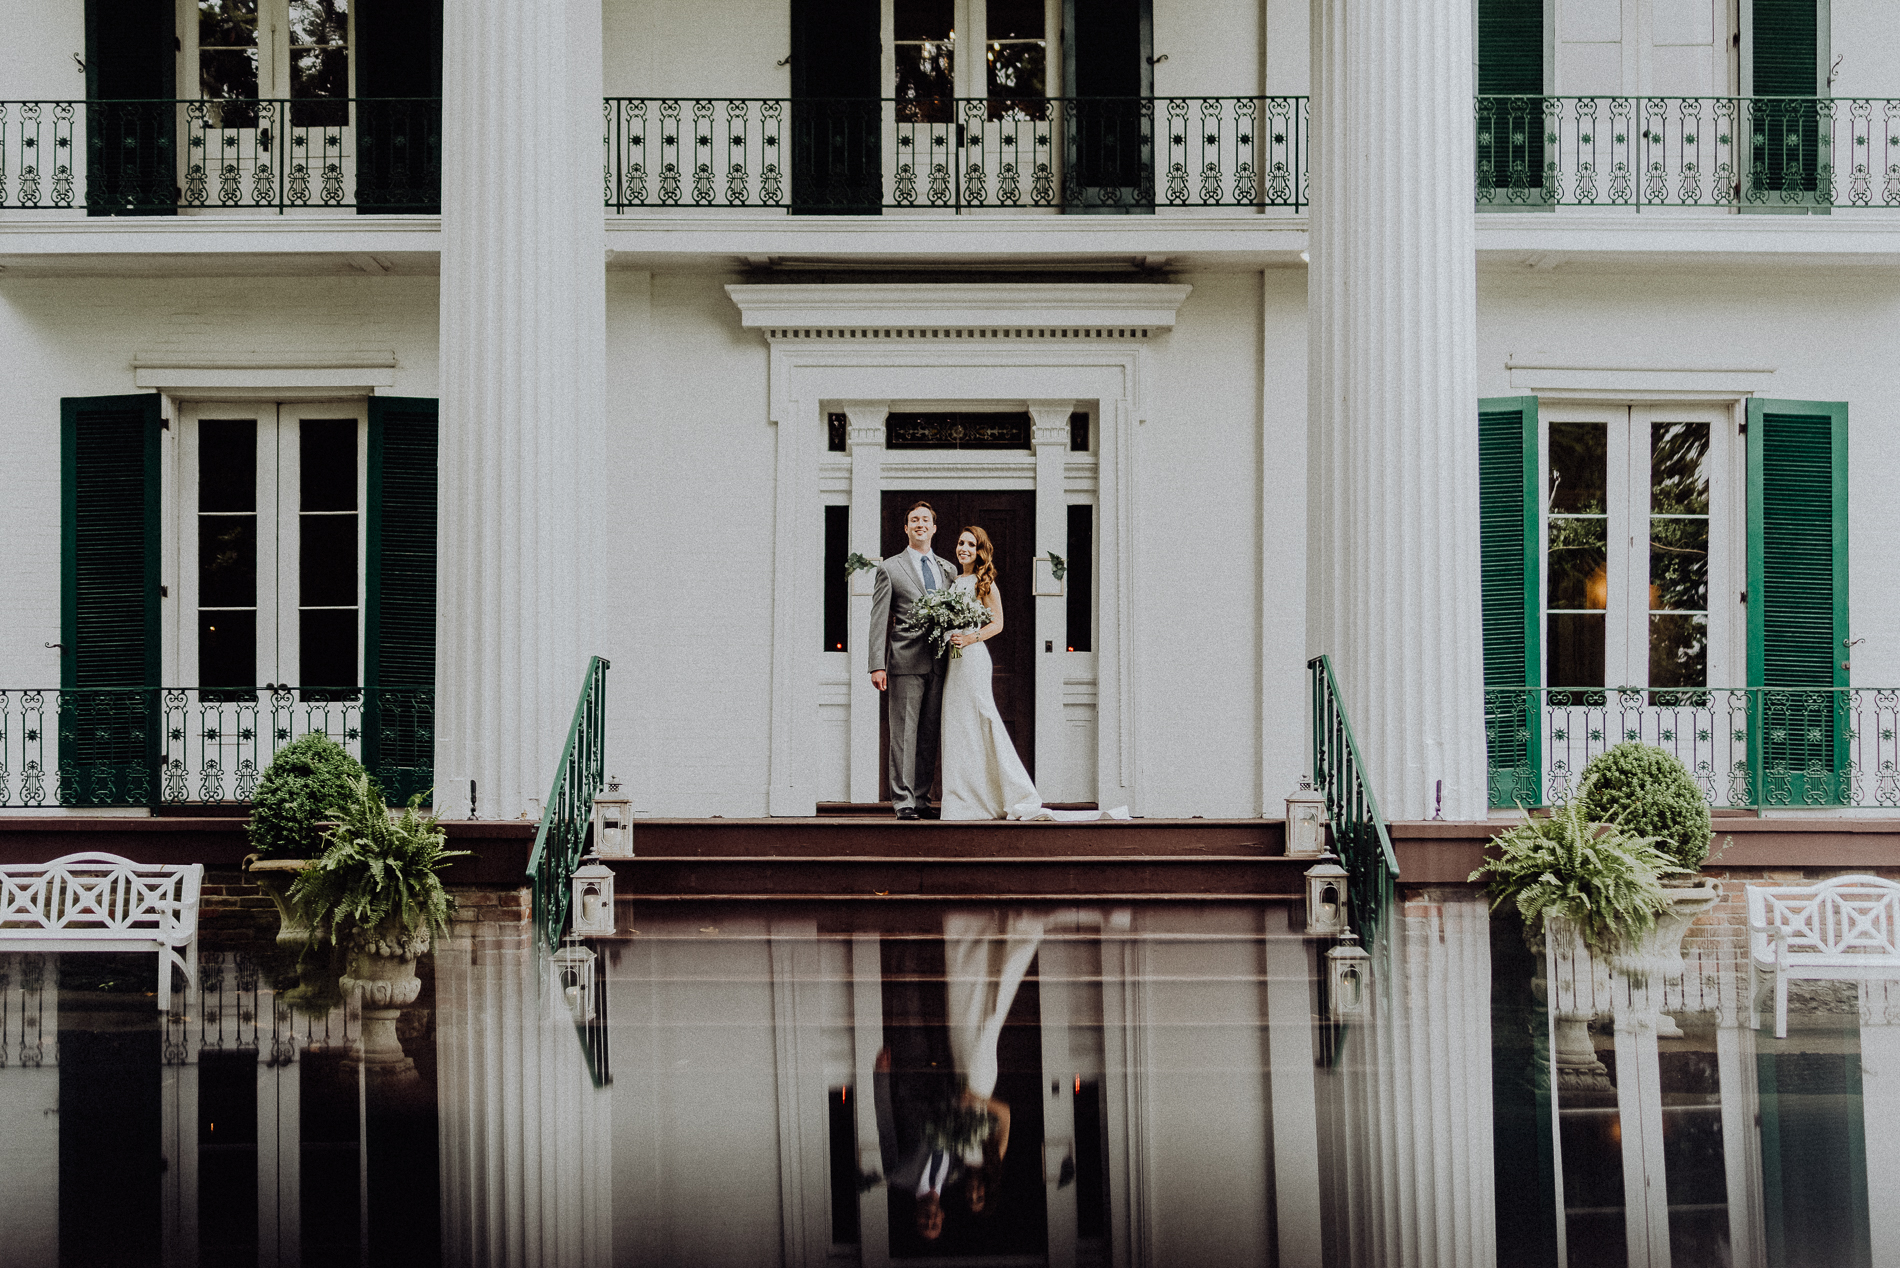 gabi and campbell east nashville wedding at riverwood mansion by wilde company-36.jpg